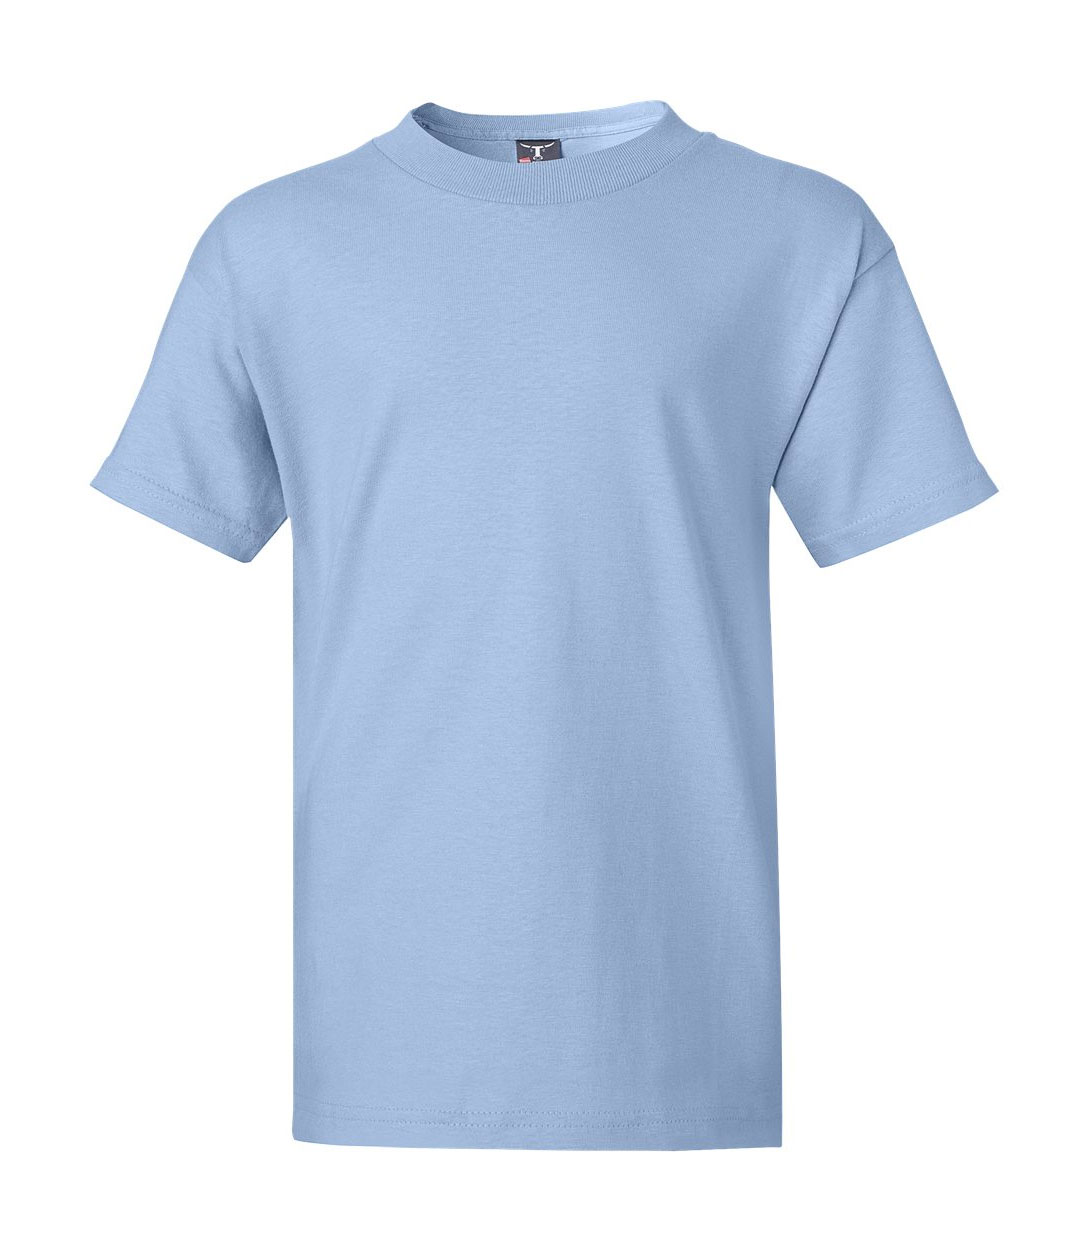 Hanes Youth Short Sleeve Beefy T-Shirt